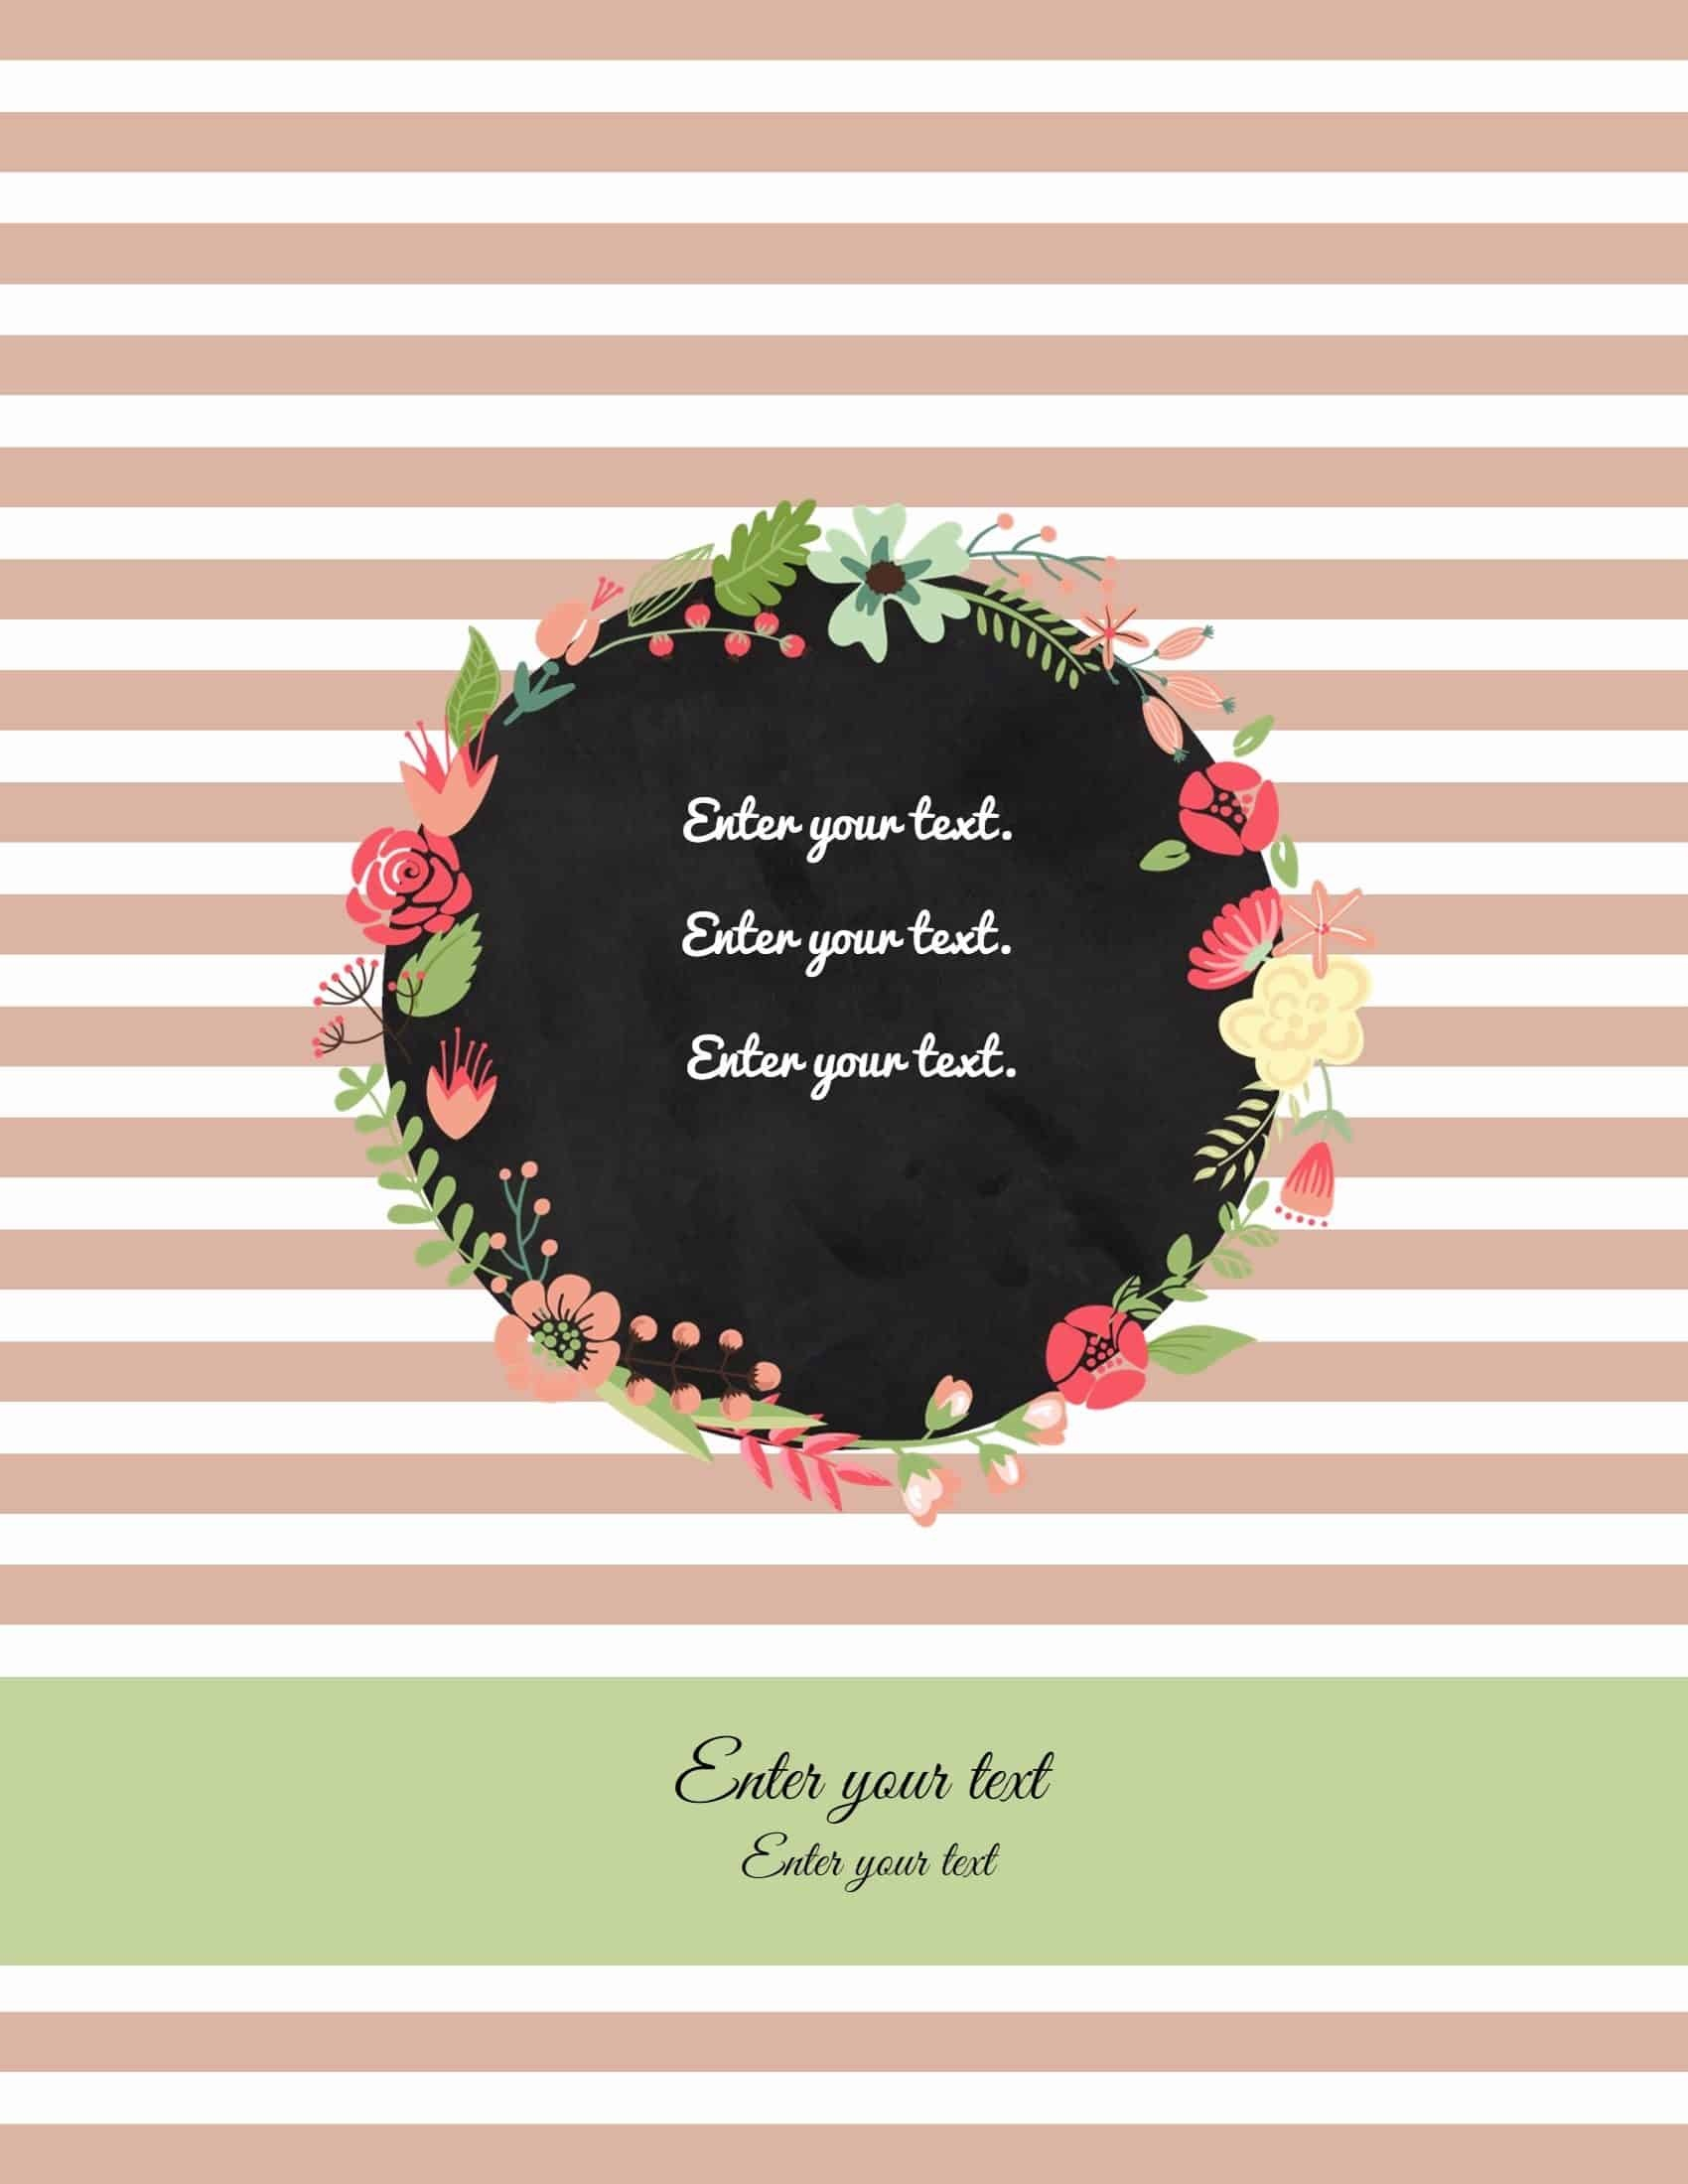 Free Binder Cover Templates   Customize Online & Print At Home   Free! - Free Printable Binder Covers